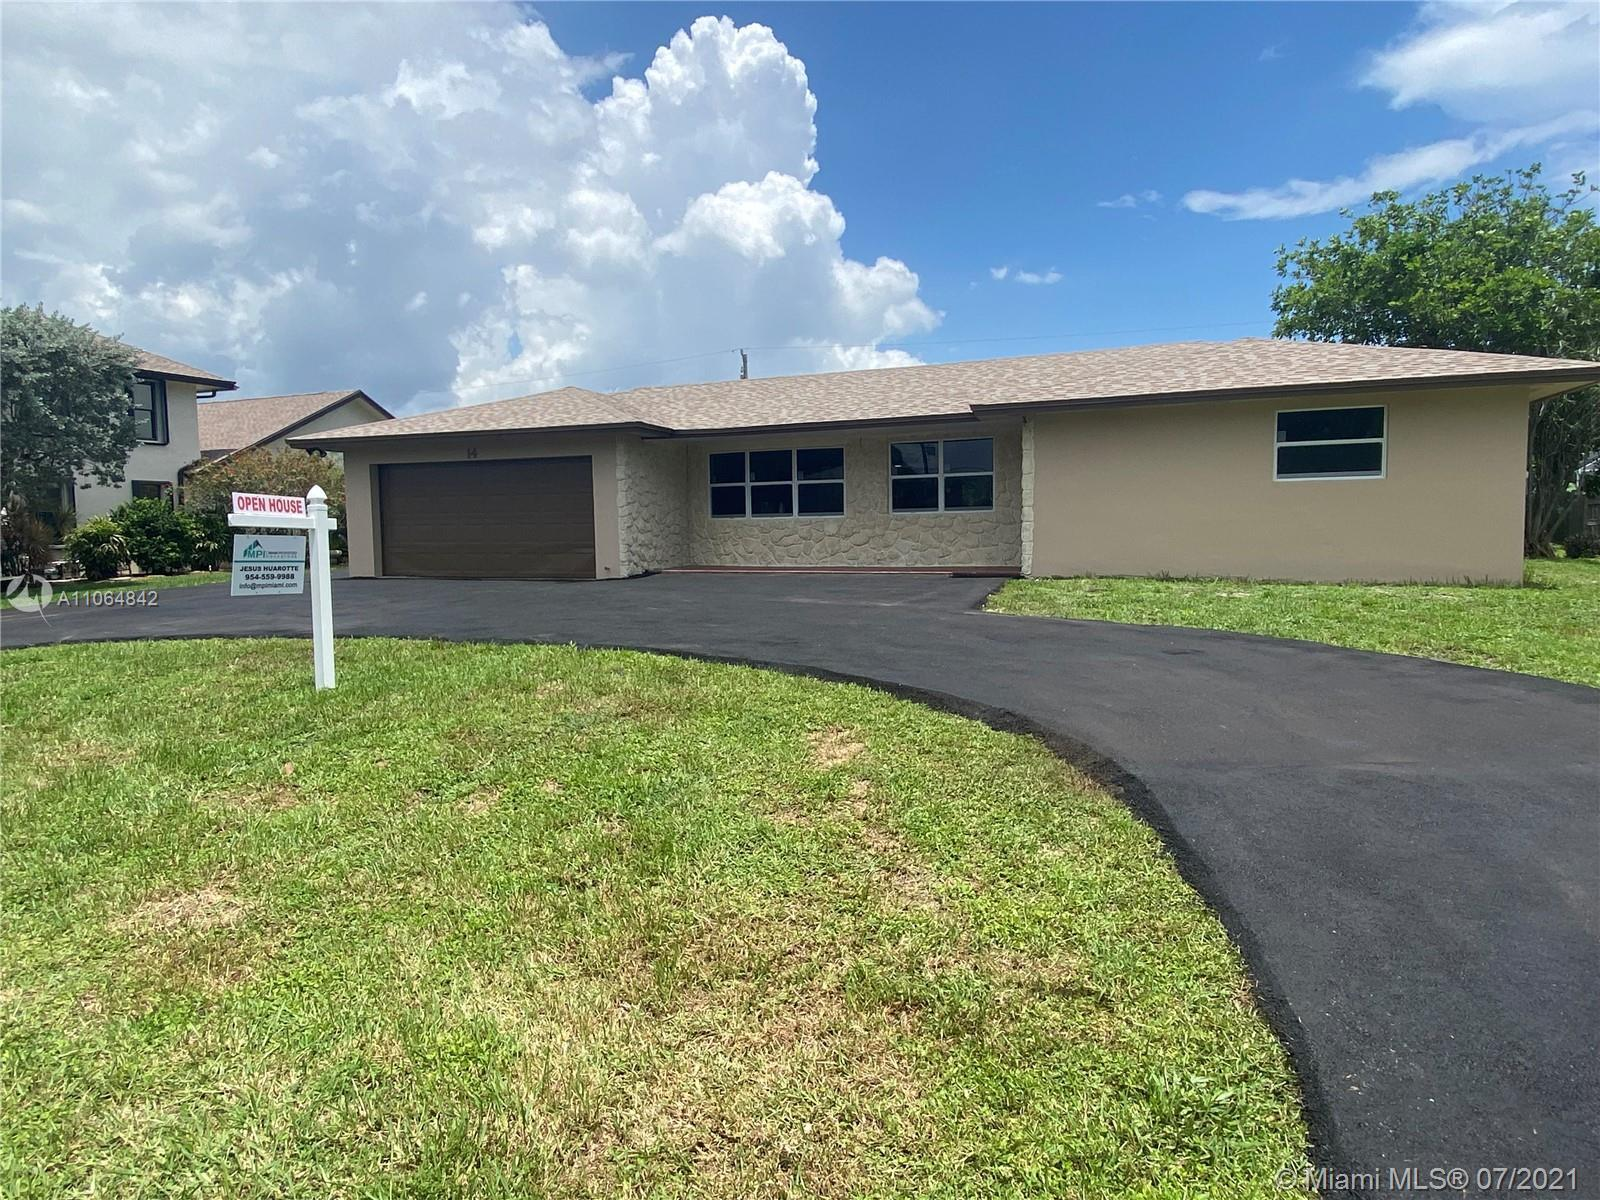 Wonderful family home! 3 bedroom 2 bath 2 car garage home with more 1,800 sqft located in Lake Worth